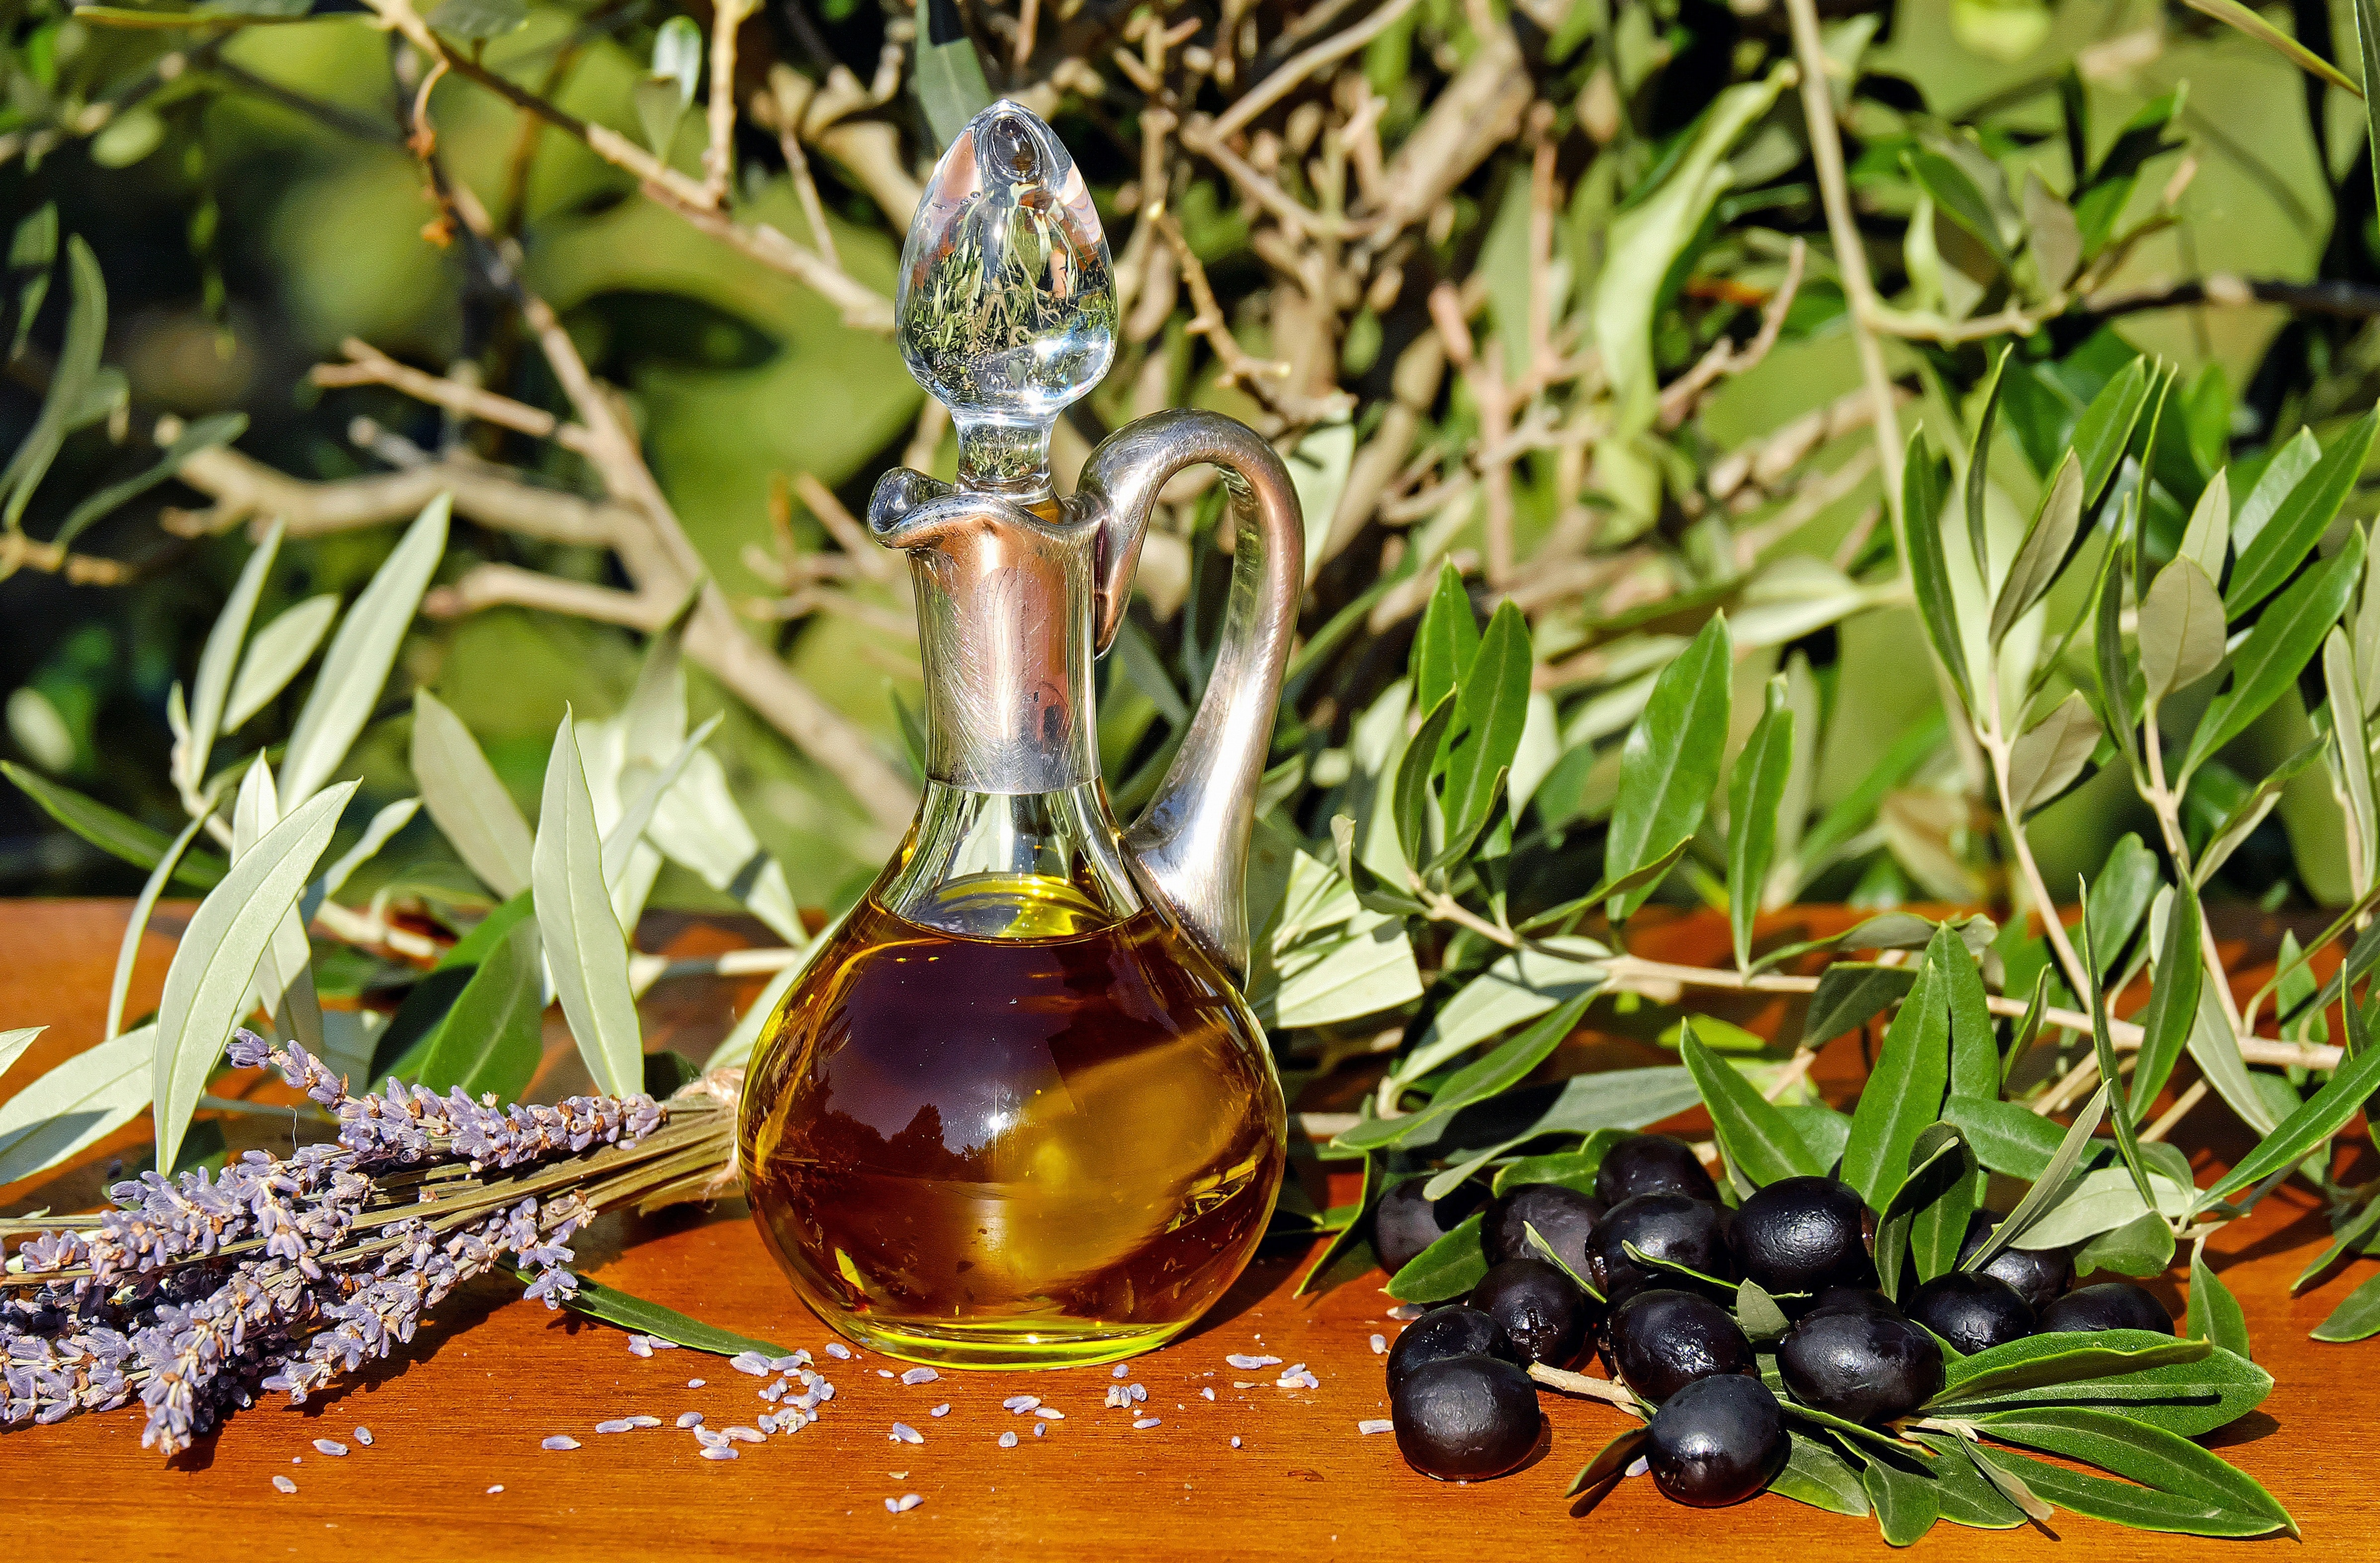 Olive oil for your health